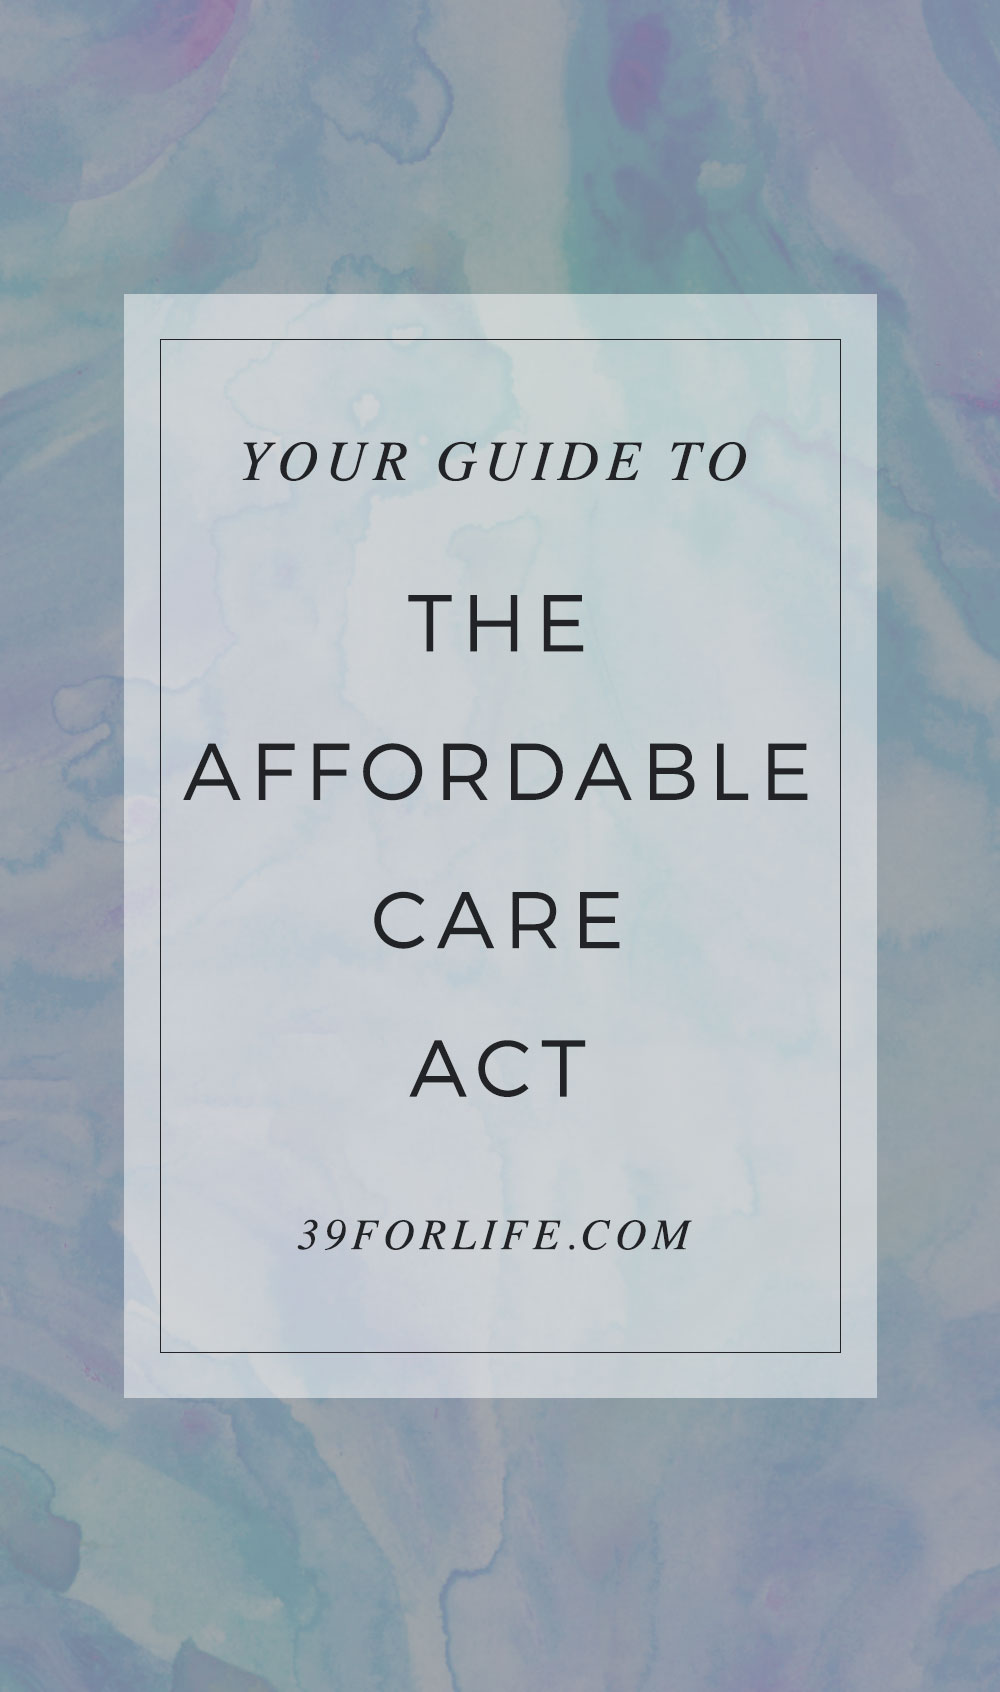 Don't be confused by the affordable care act or Obamacare. Here are the benefits you'll get and how to make sure you're getting the best benefits possible.